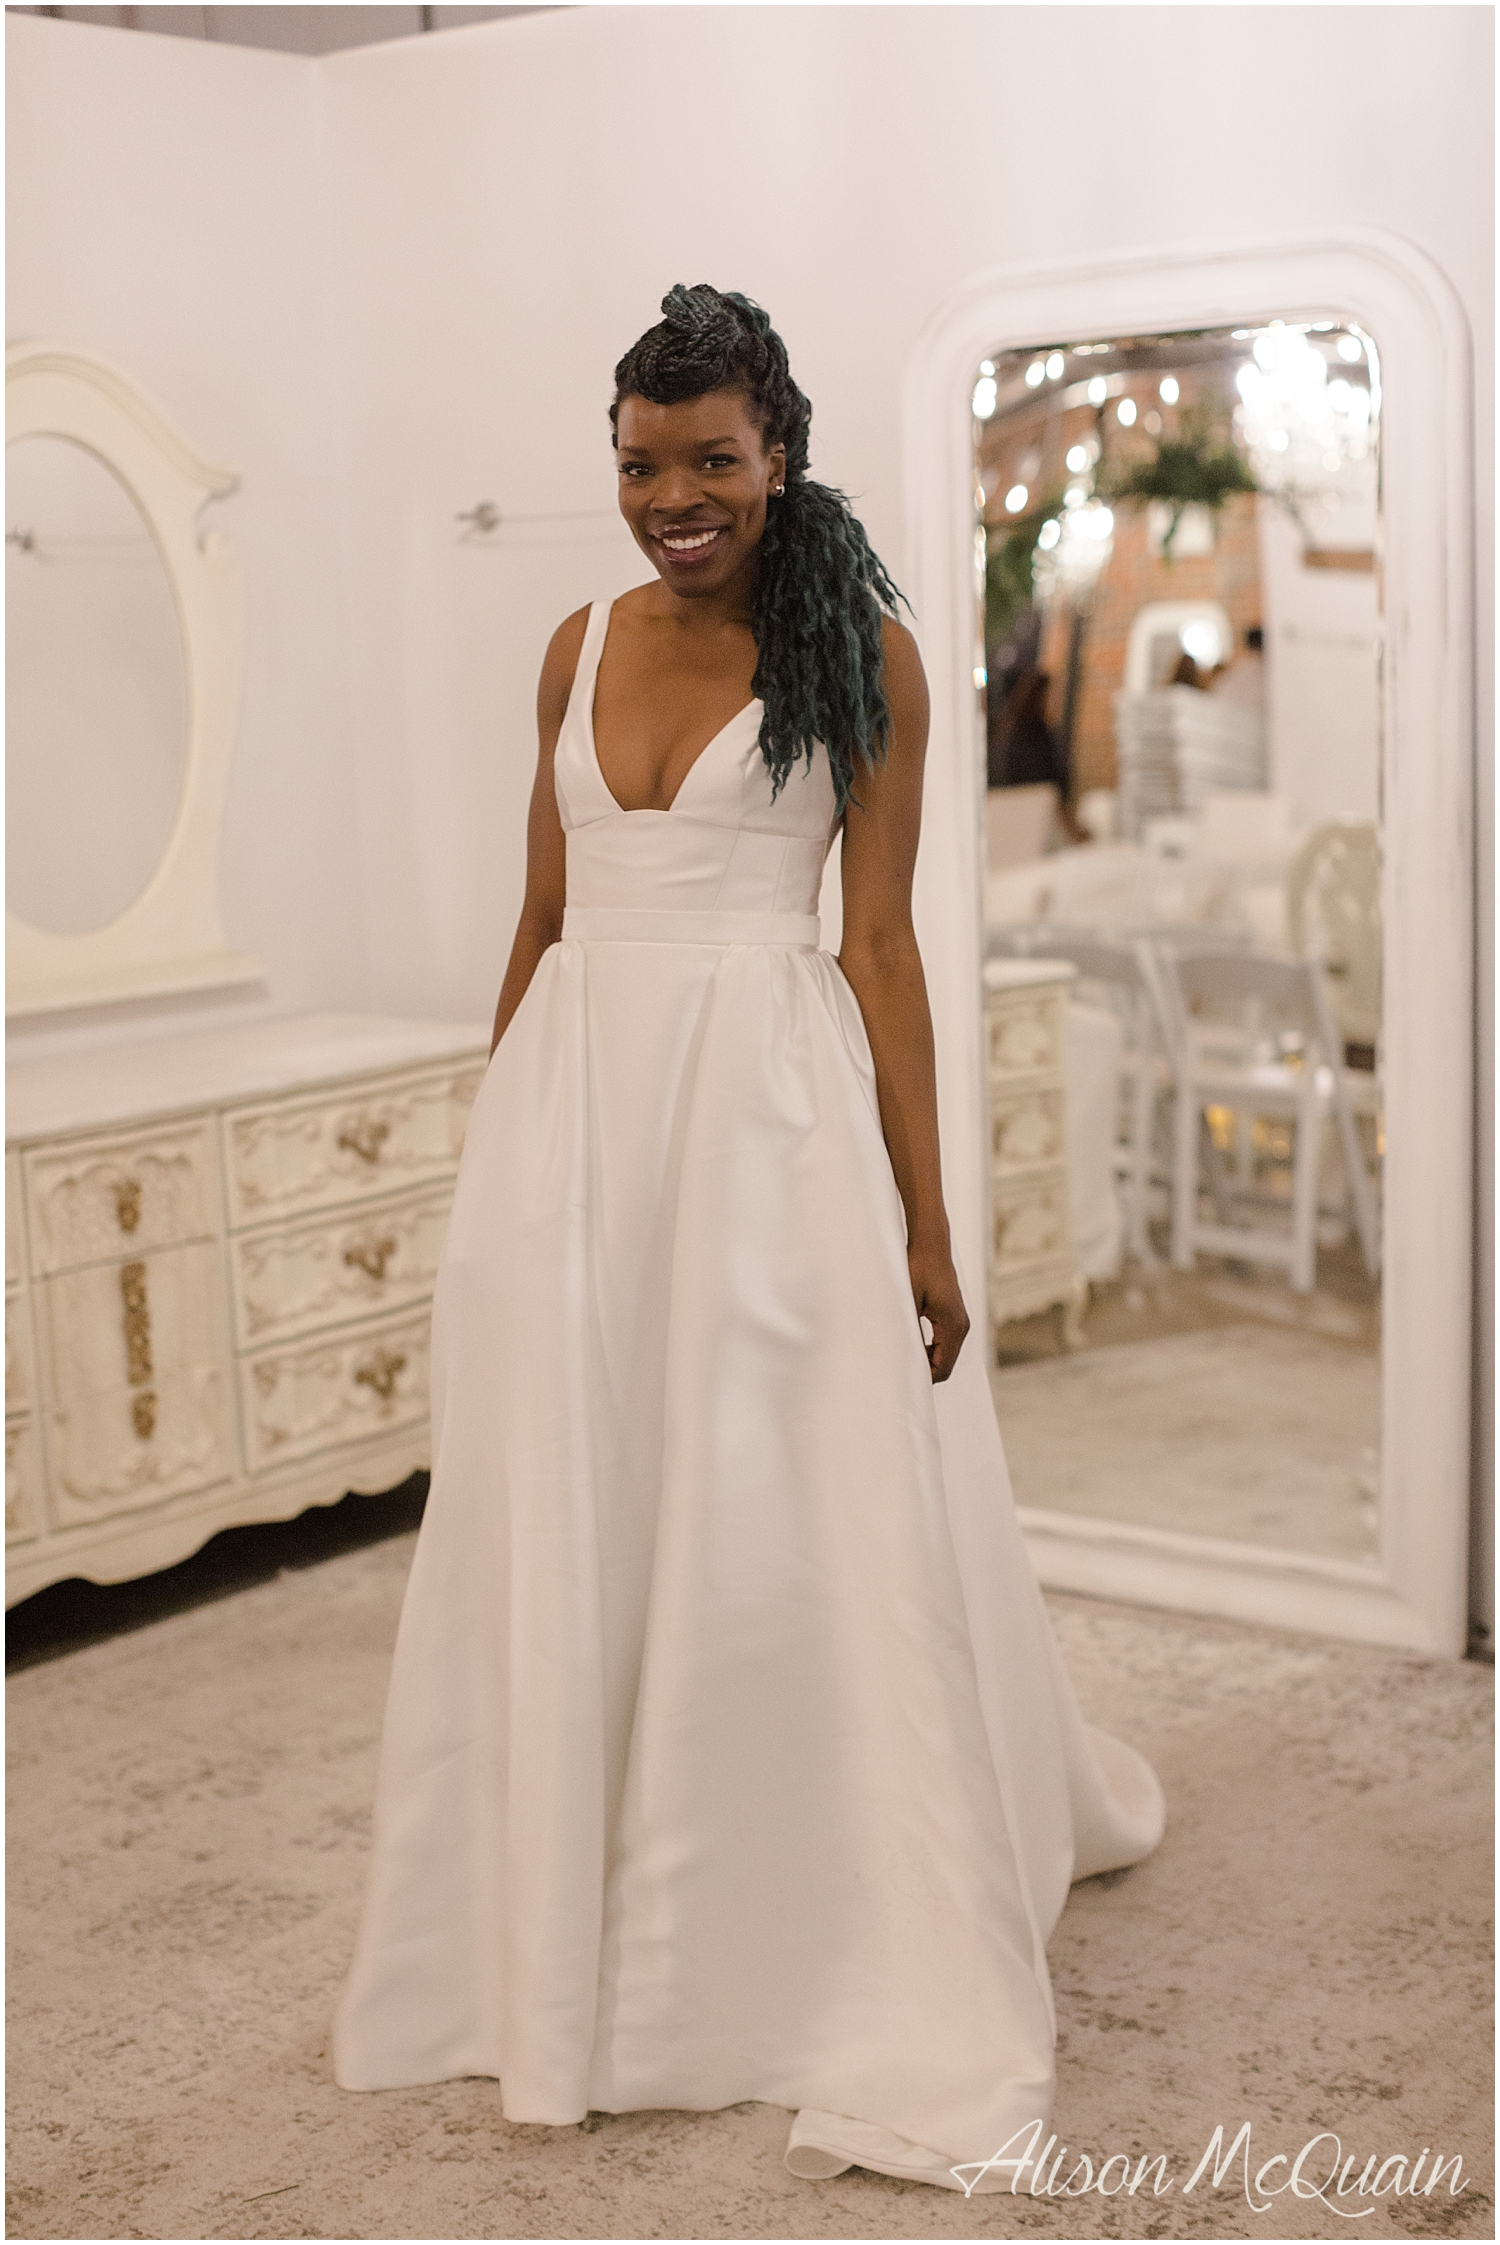 Look at the detail at the waist. Shout out 40's/50's! Maybe I stalked her and that gown a bit but hey,  Adaeze  loved it so much she didn't want to take it off. I feel like if she liked it that much I was ok to follow her around until I got this pic.